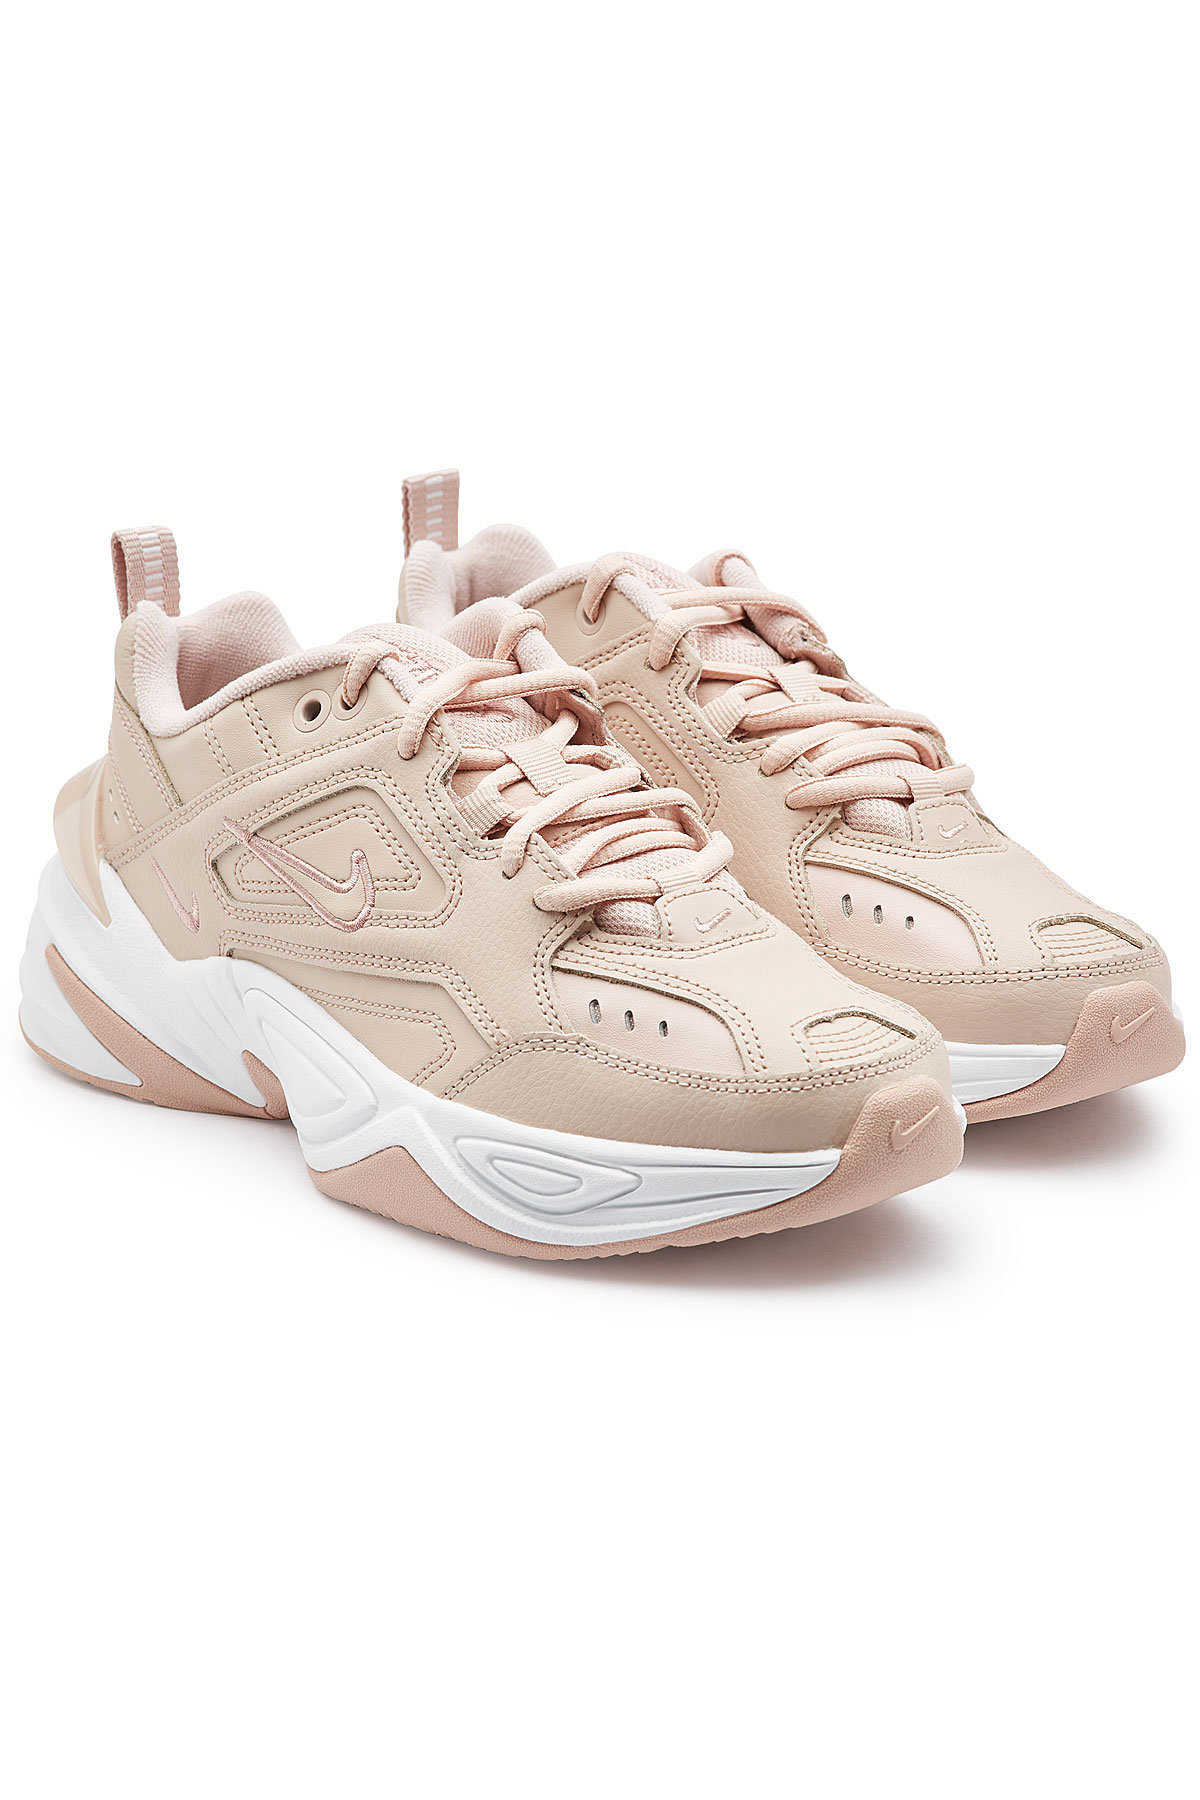 Nike M2K Tekno Sneakers with Leather